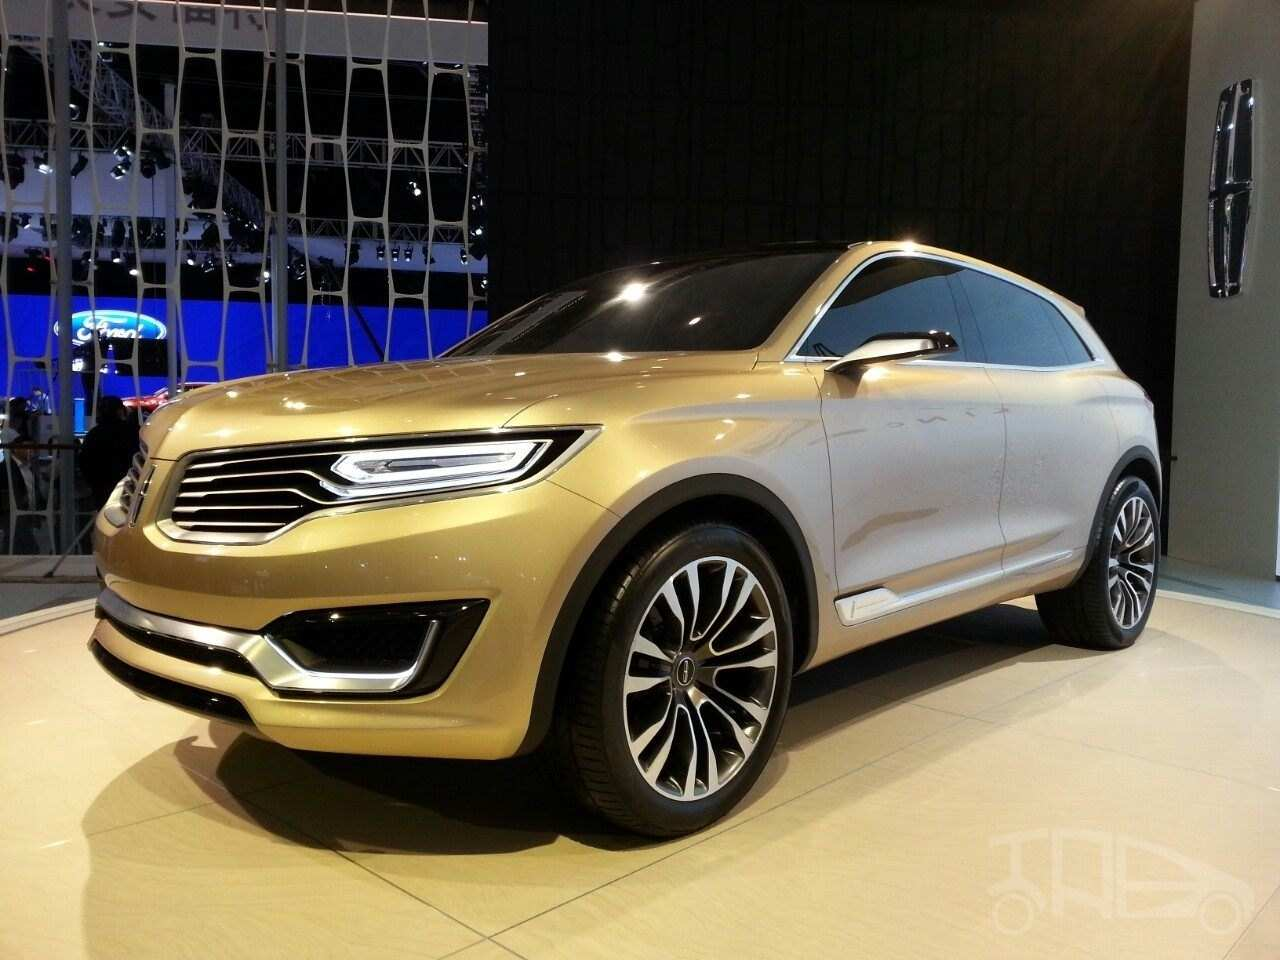 97 New 2020 Lincoln Mkx At Beijing Motor Show Exterior